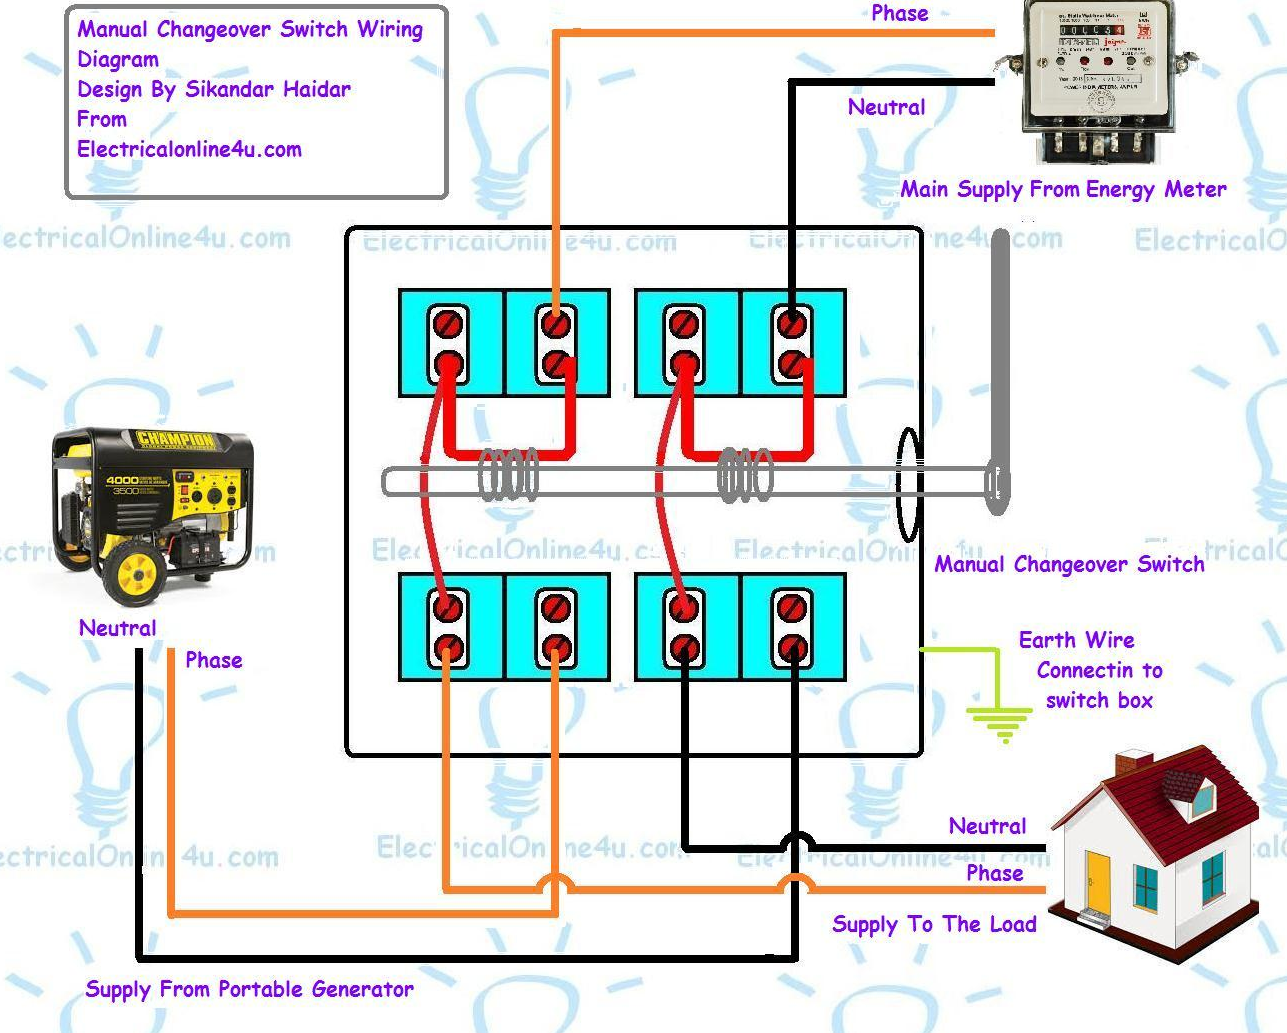 Manual Changeover Switch Wiring Diagram on auto transformer circuit diagram